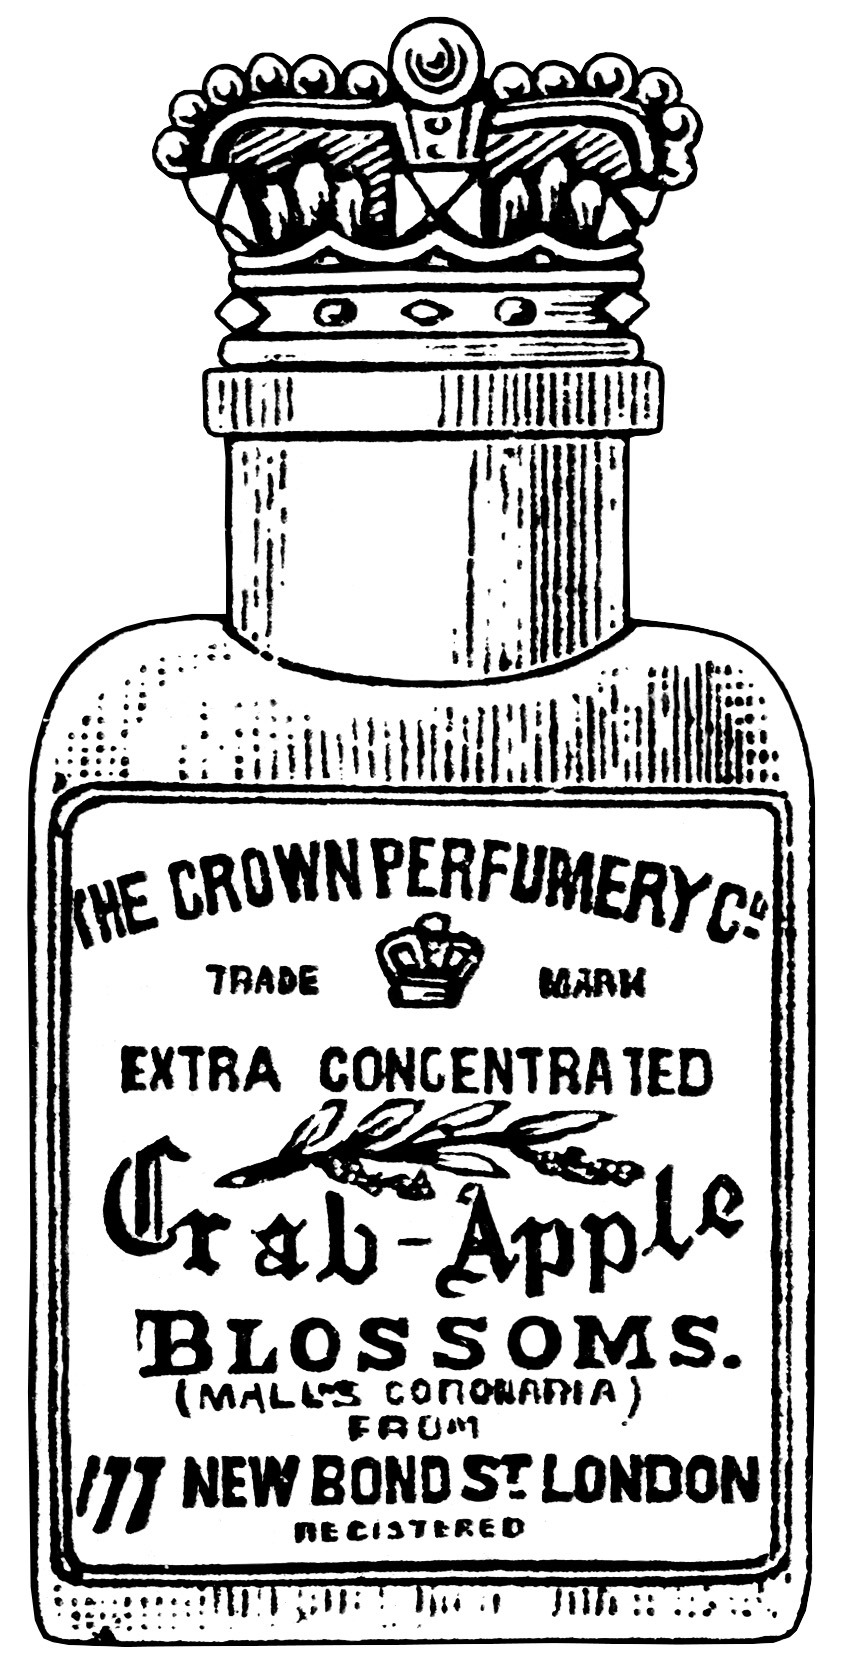 crown perfumery co, crab apple blossoms, junk journal printable, vintage perfume clip art, black and white graphics